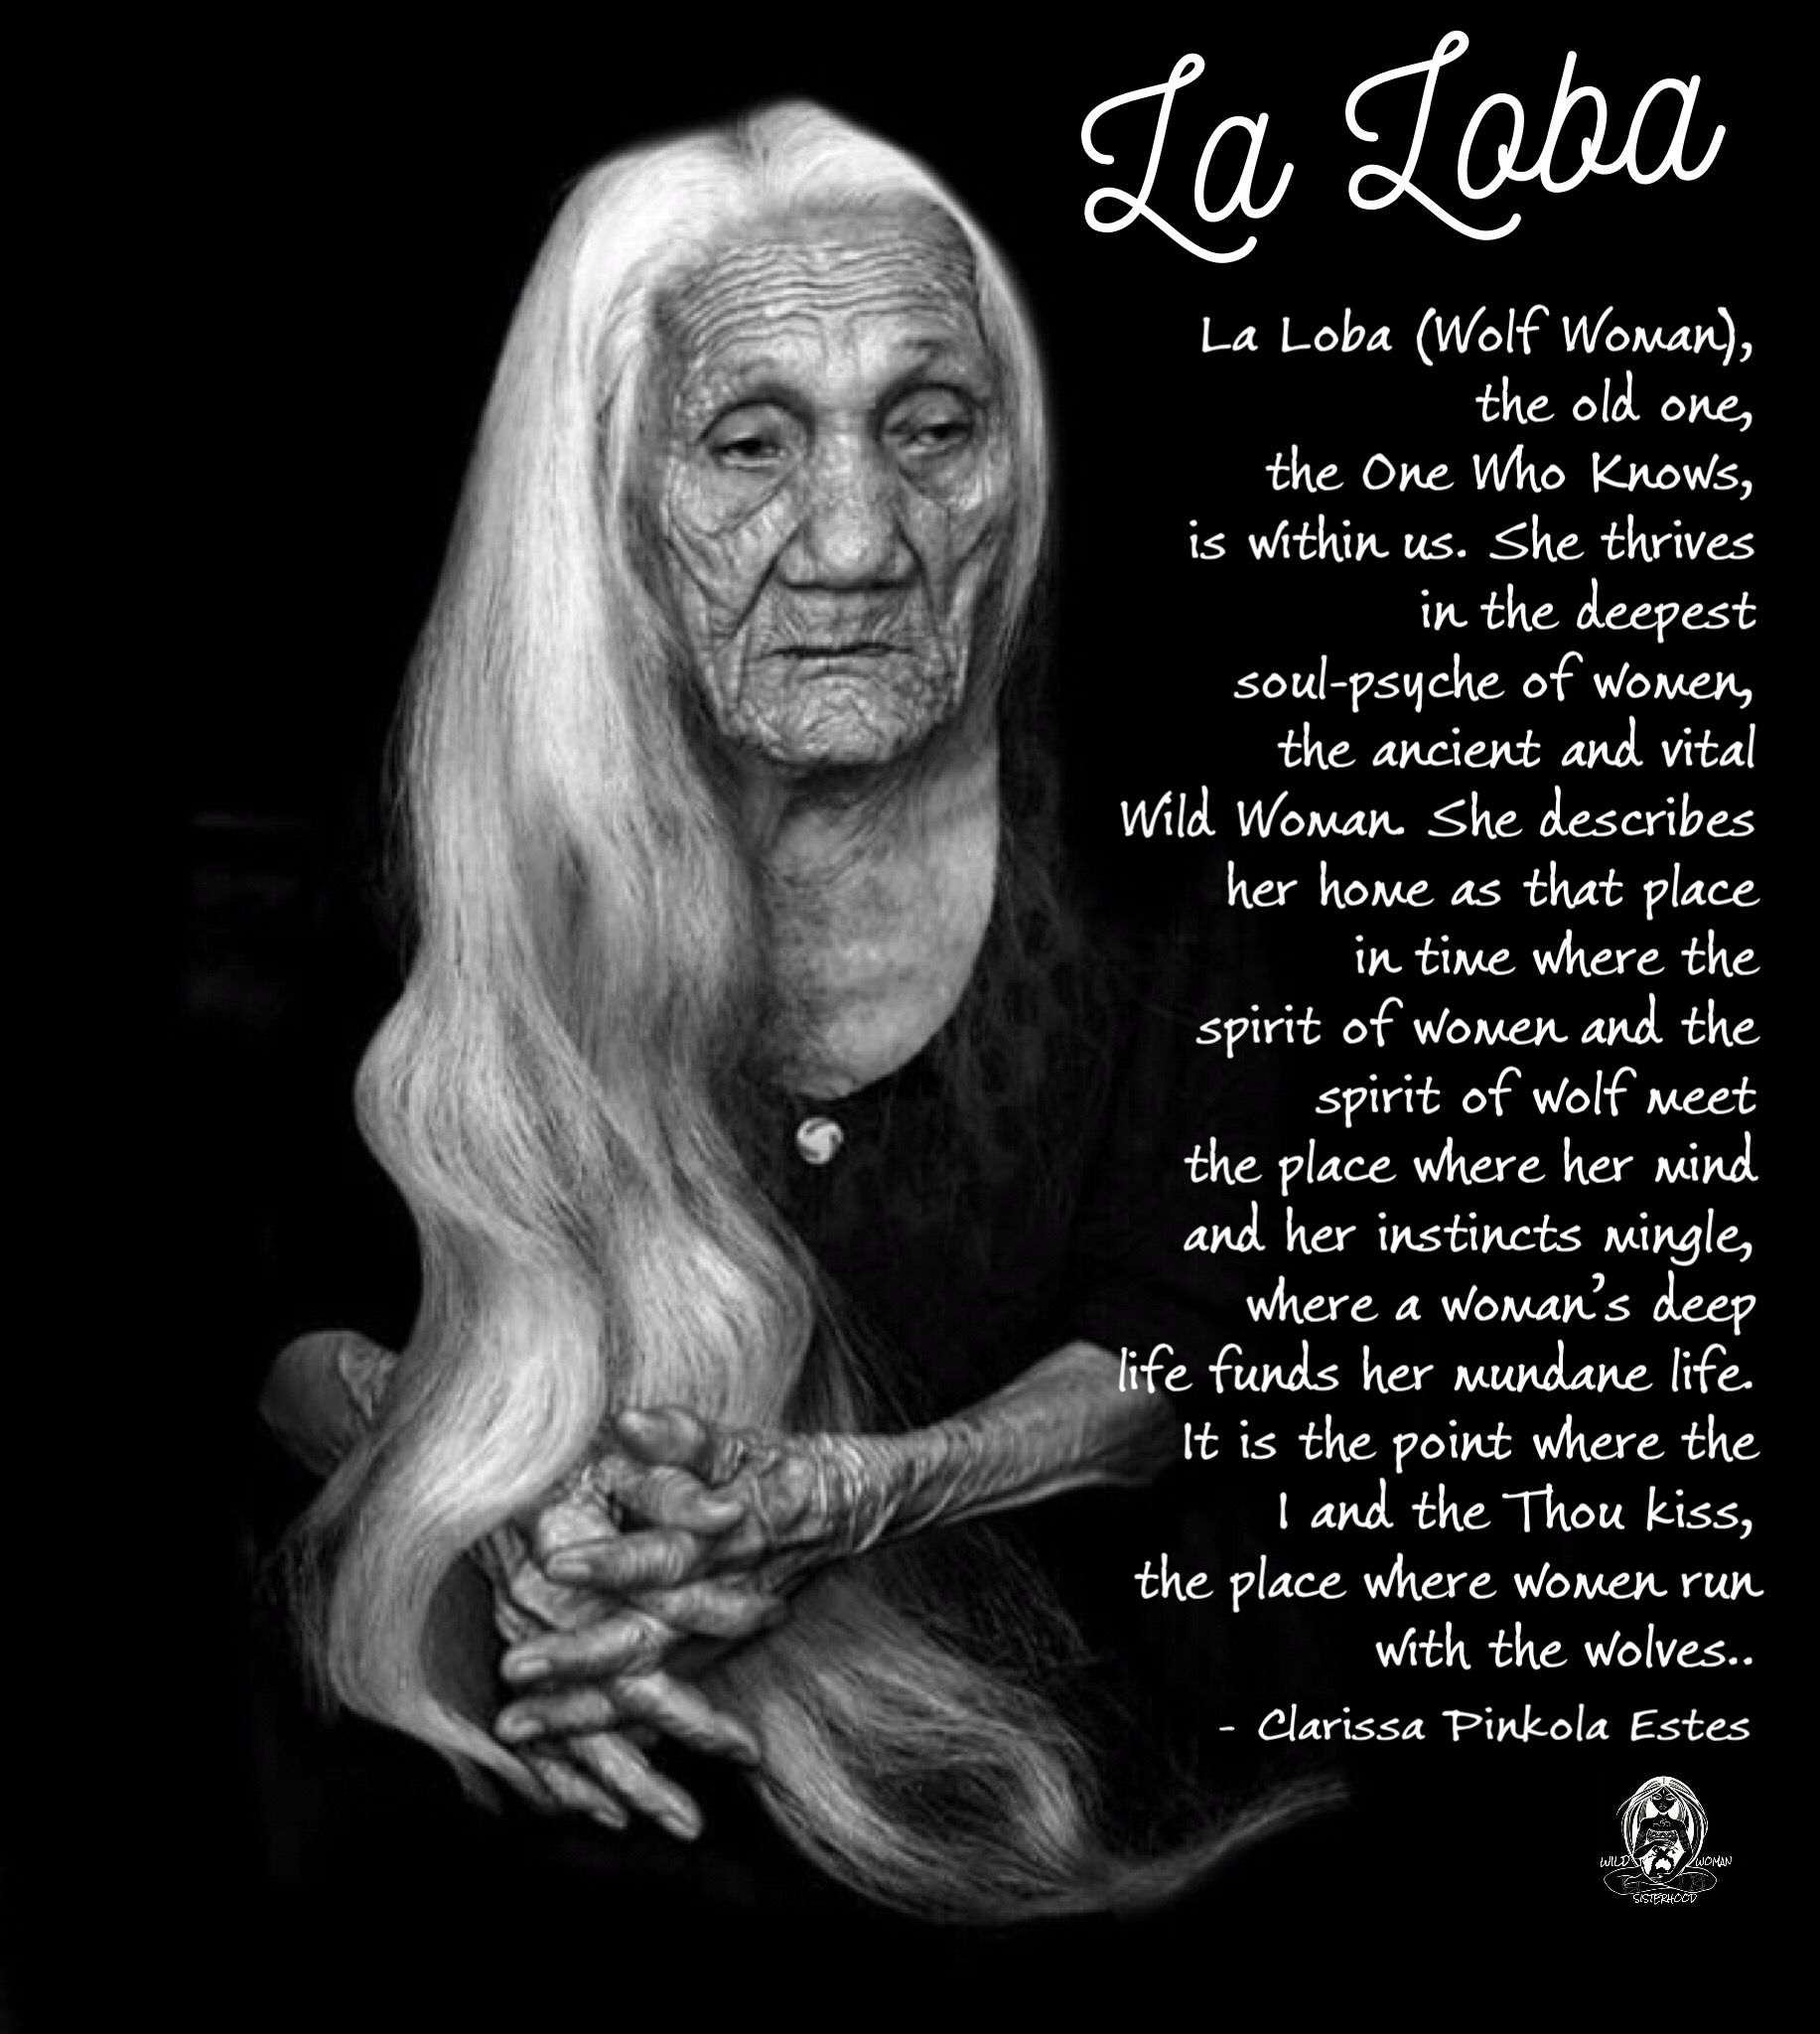 Women Who Run With The Wolves Quotes: La Loba (Wolf Woman), The Old One, The One Who Knows, Is